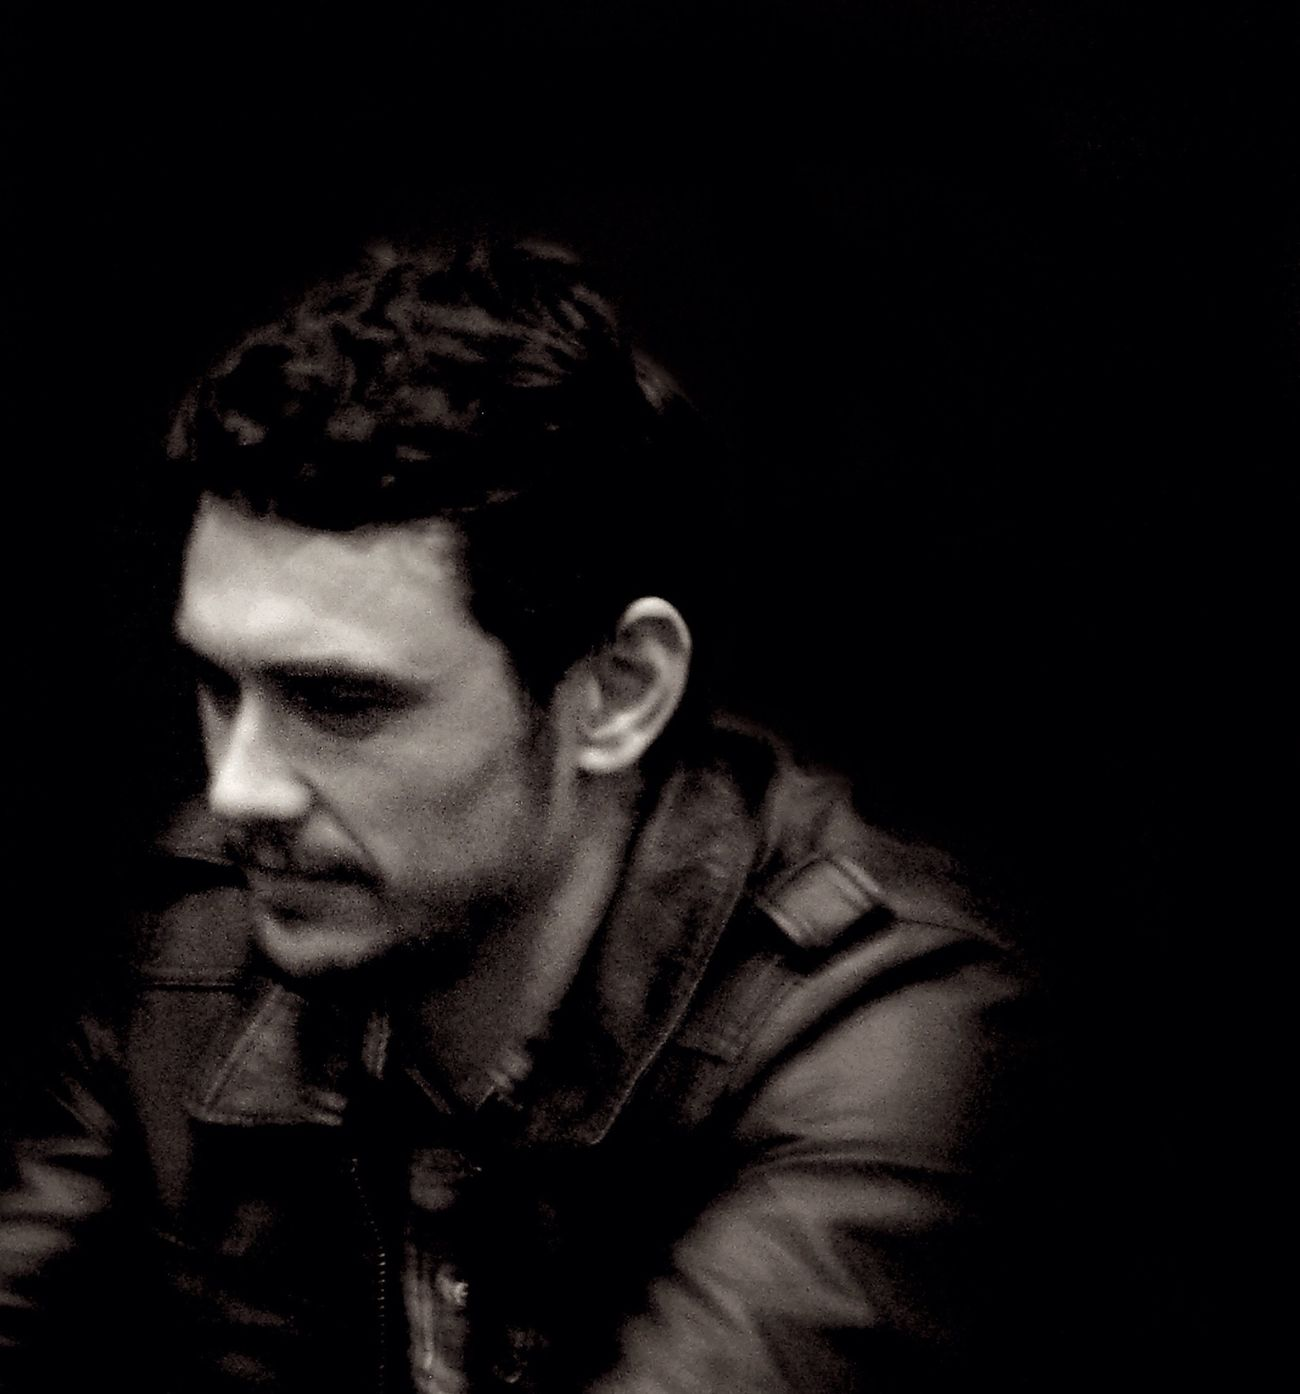 James Franco NYC Actor And Director Painter Writer Blackandwhite Grainy Is Cool Celebrity Portraiture Black Leather Canon G9